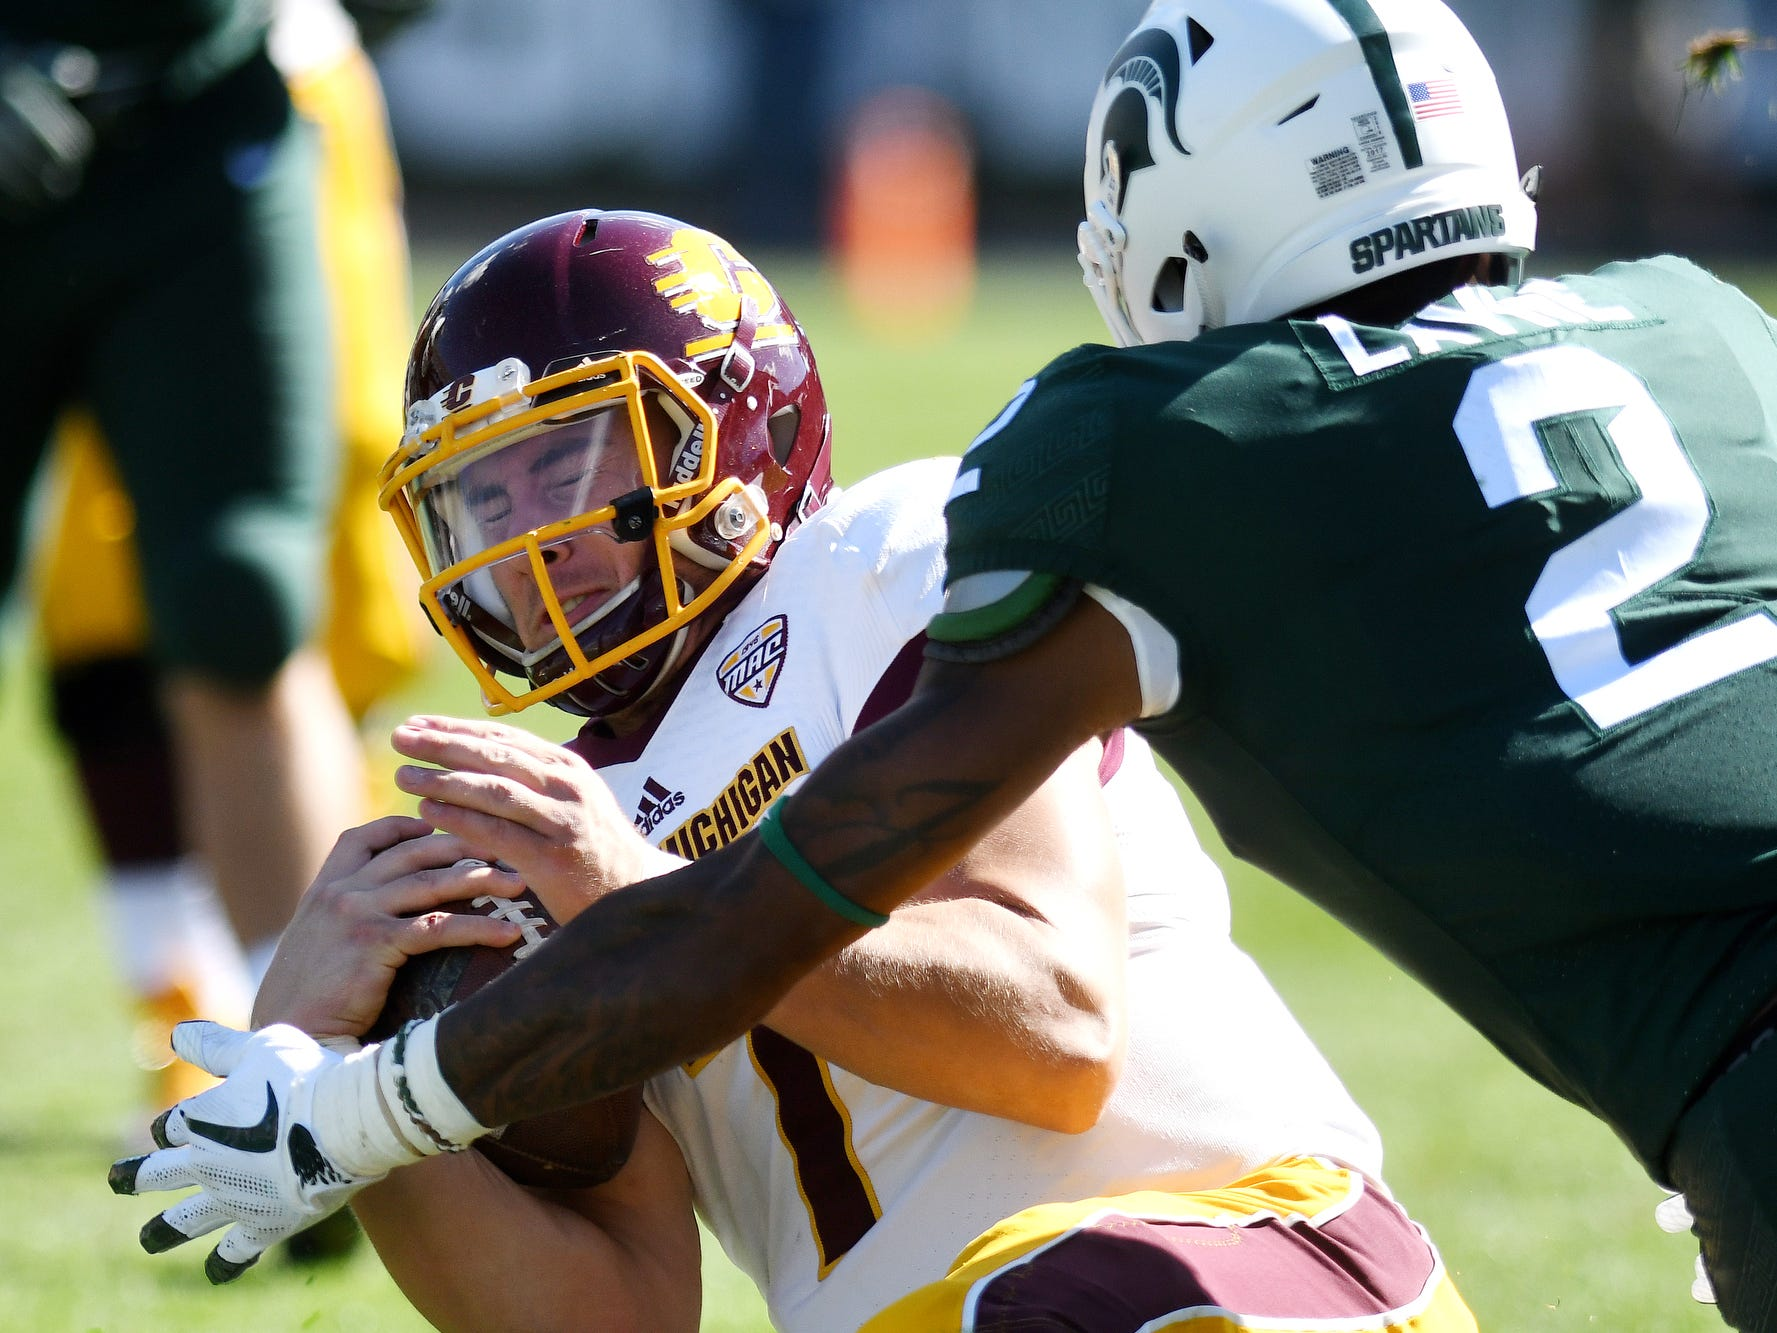 Michigan State's Justin Layne, right, is penalized for a late hit on Central Michigan quarterback Tommy Lazzaro during the fourth quarter on Saturday, Sept. 29, 2018, at Spartan Stadium in East Lansing.